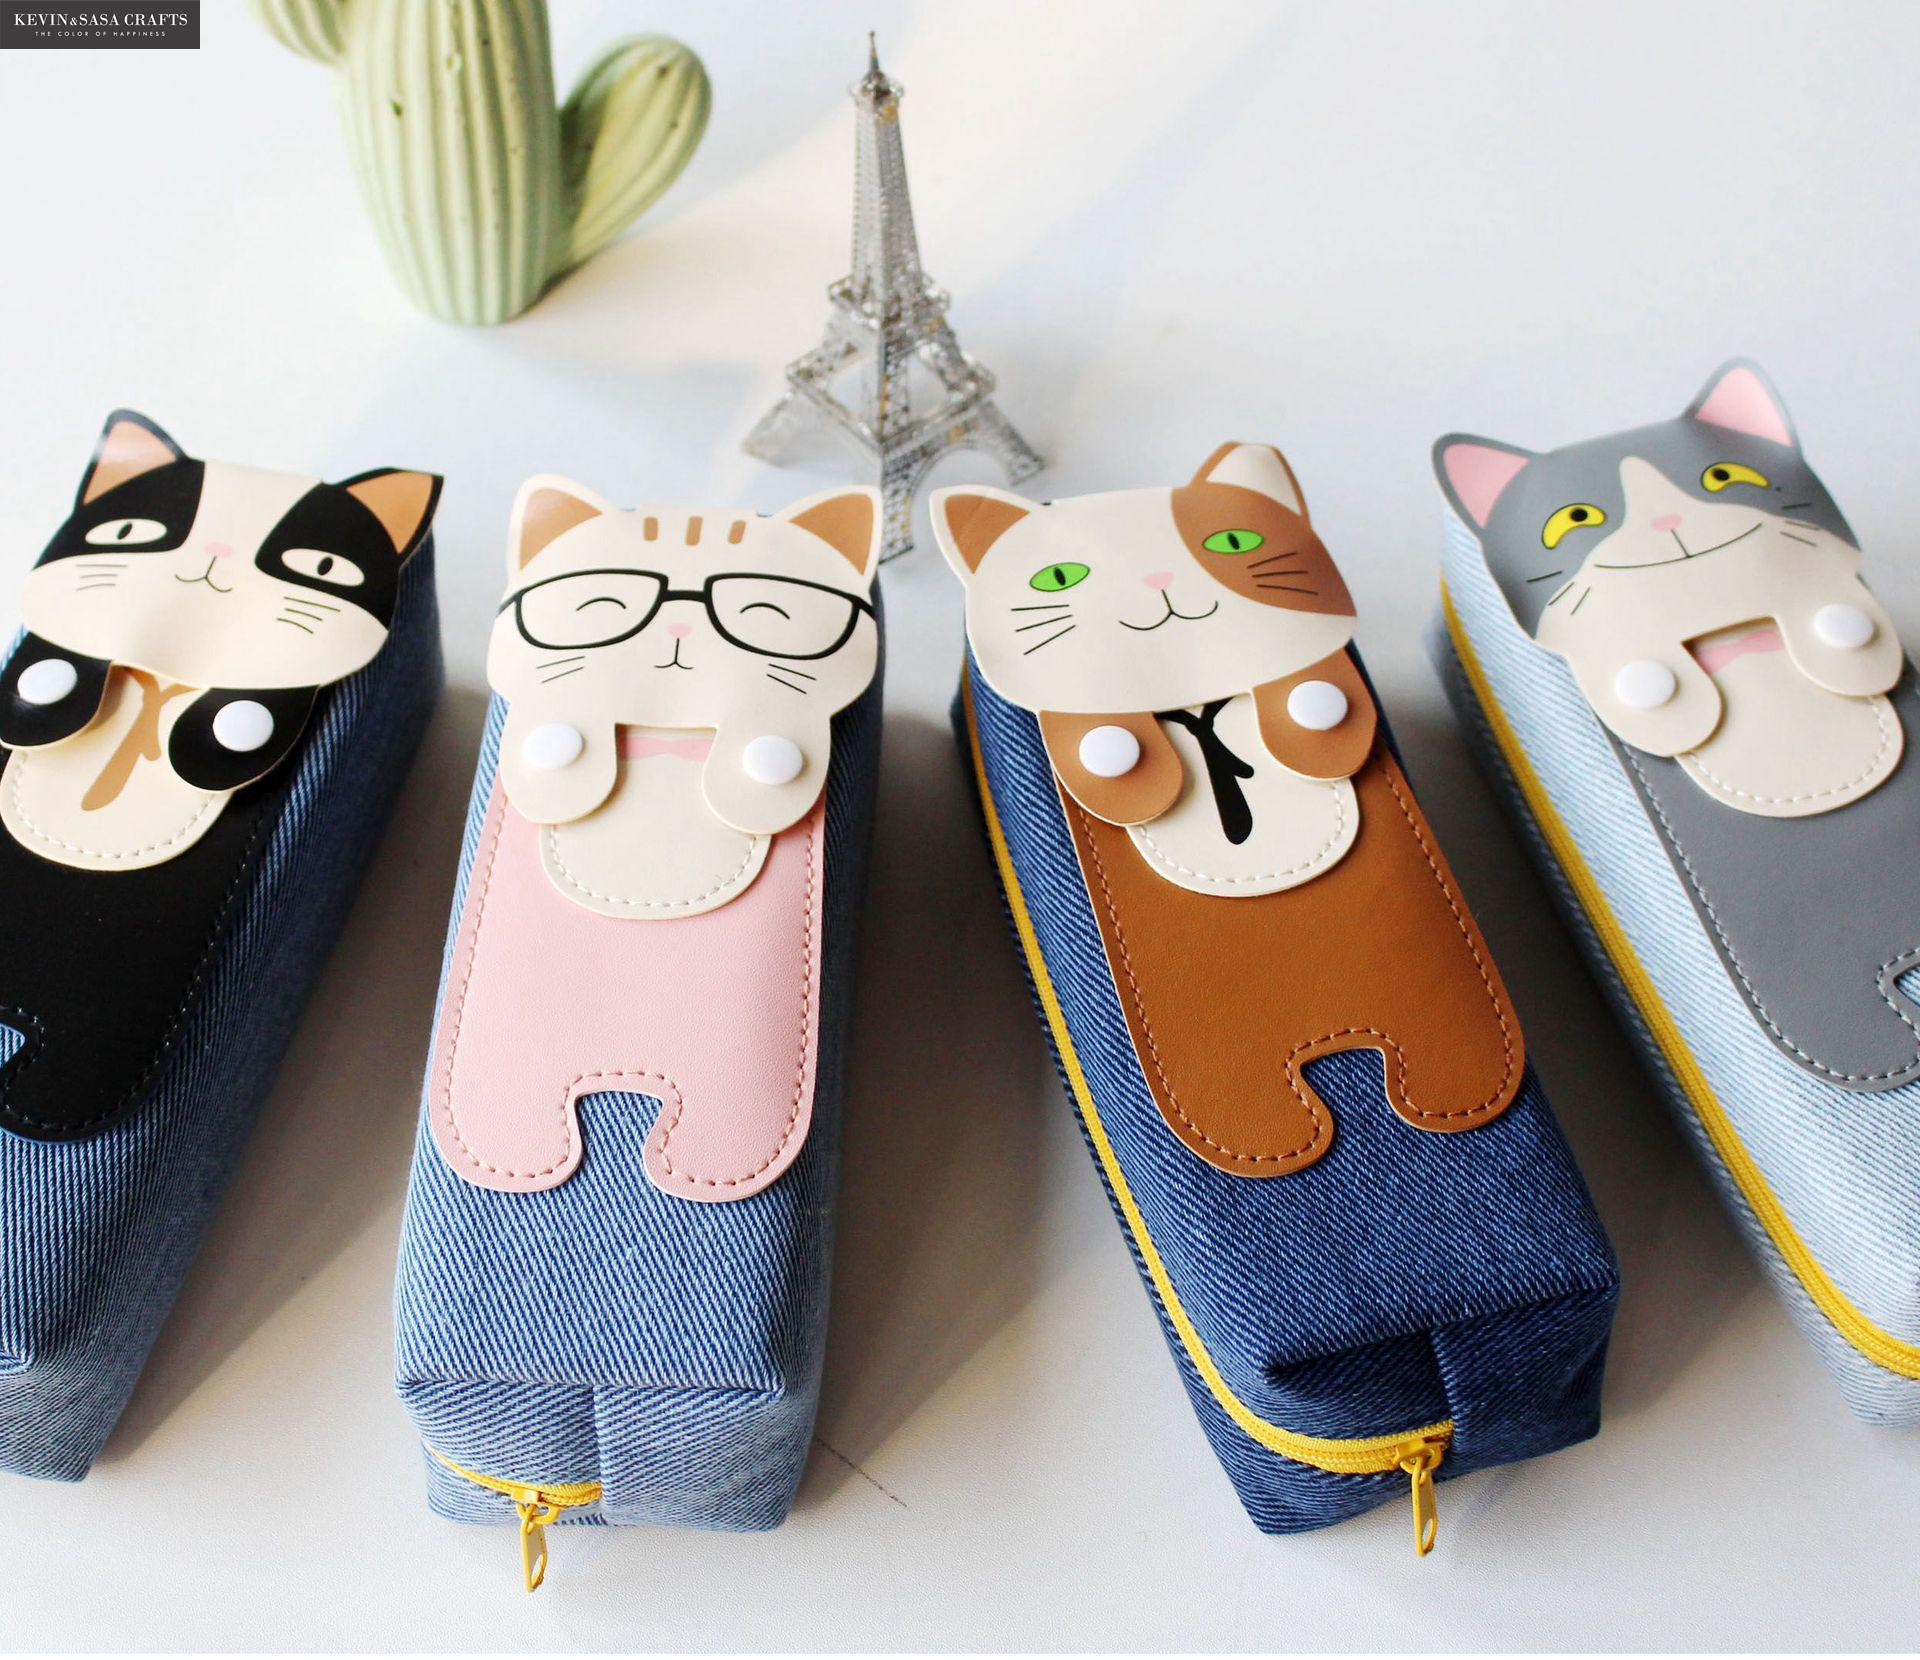 Cat Pencil Case Quality Fabric School Supplies Bts Stationery Gift Pencilcase School Cute Pencil Box School Tools Pencil Bag fish pencil case super fabric school supplies bts stationery gift school cute pencil box pencilcase pencil bag school supply